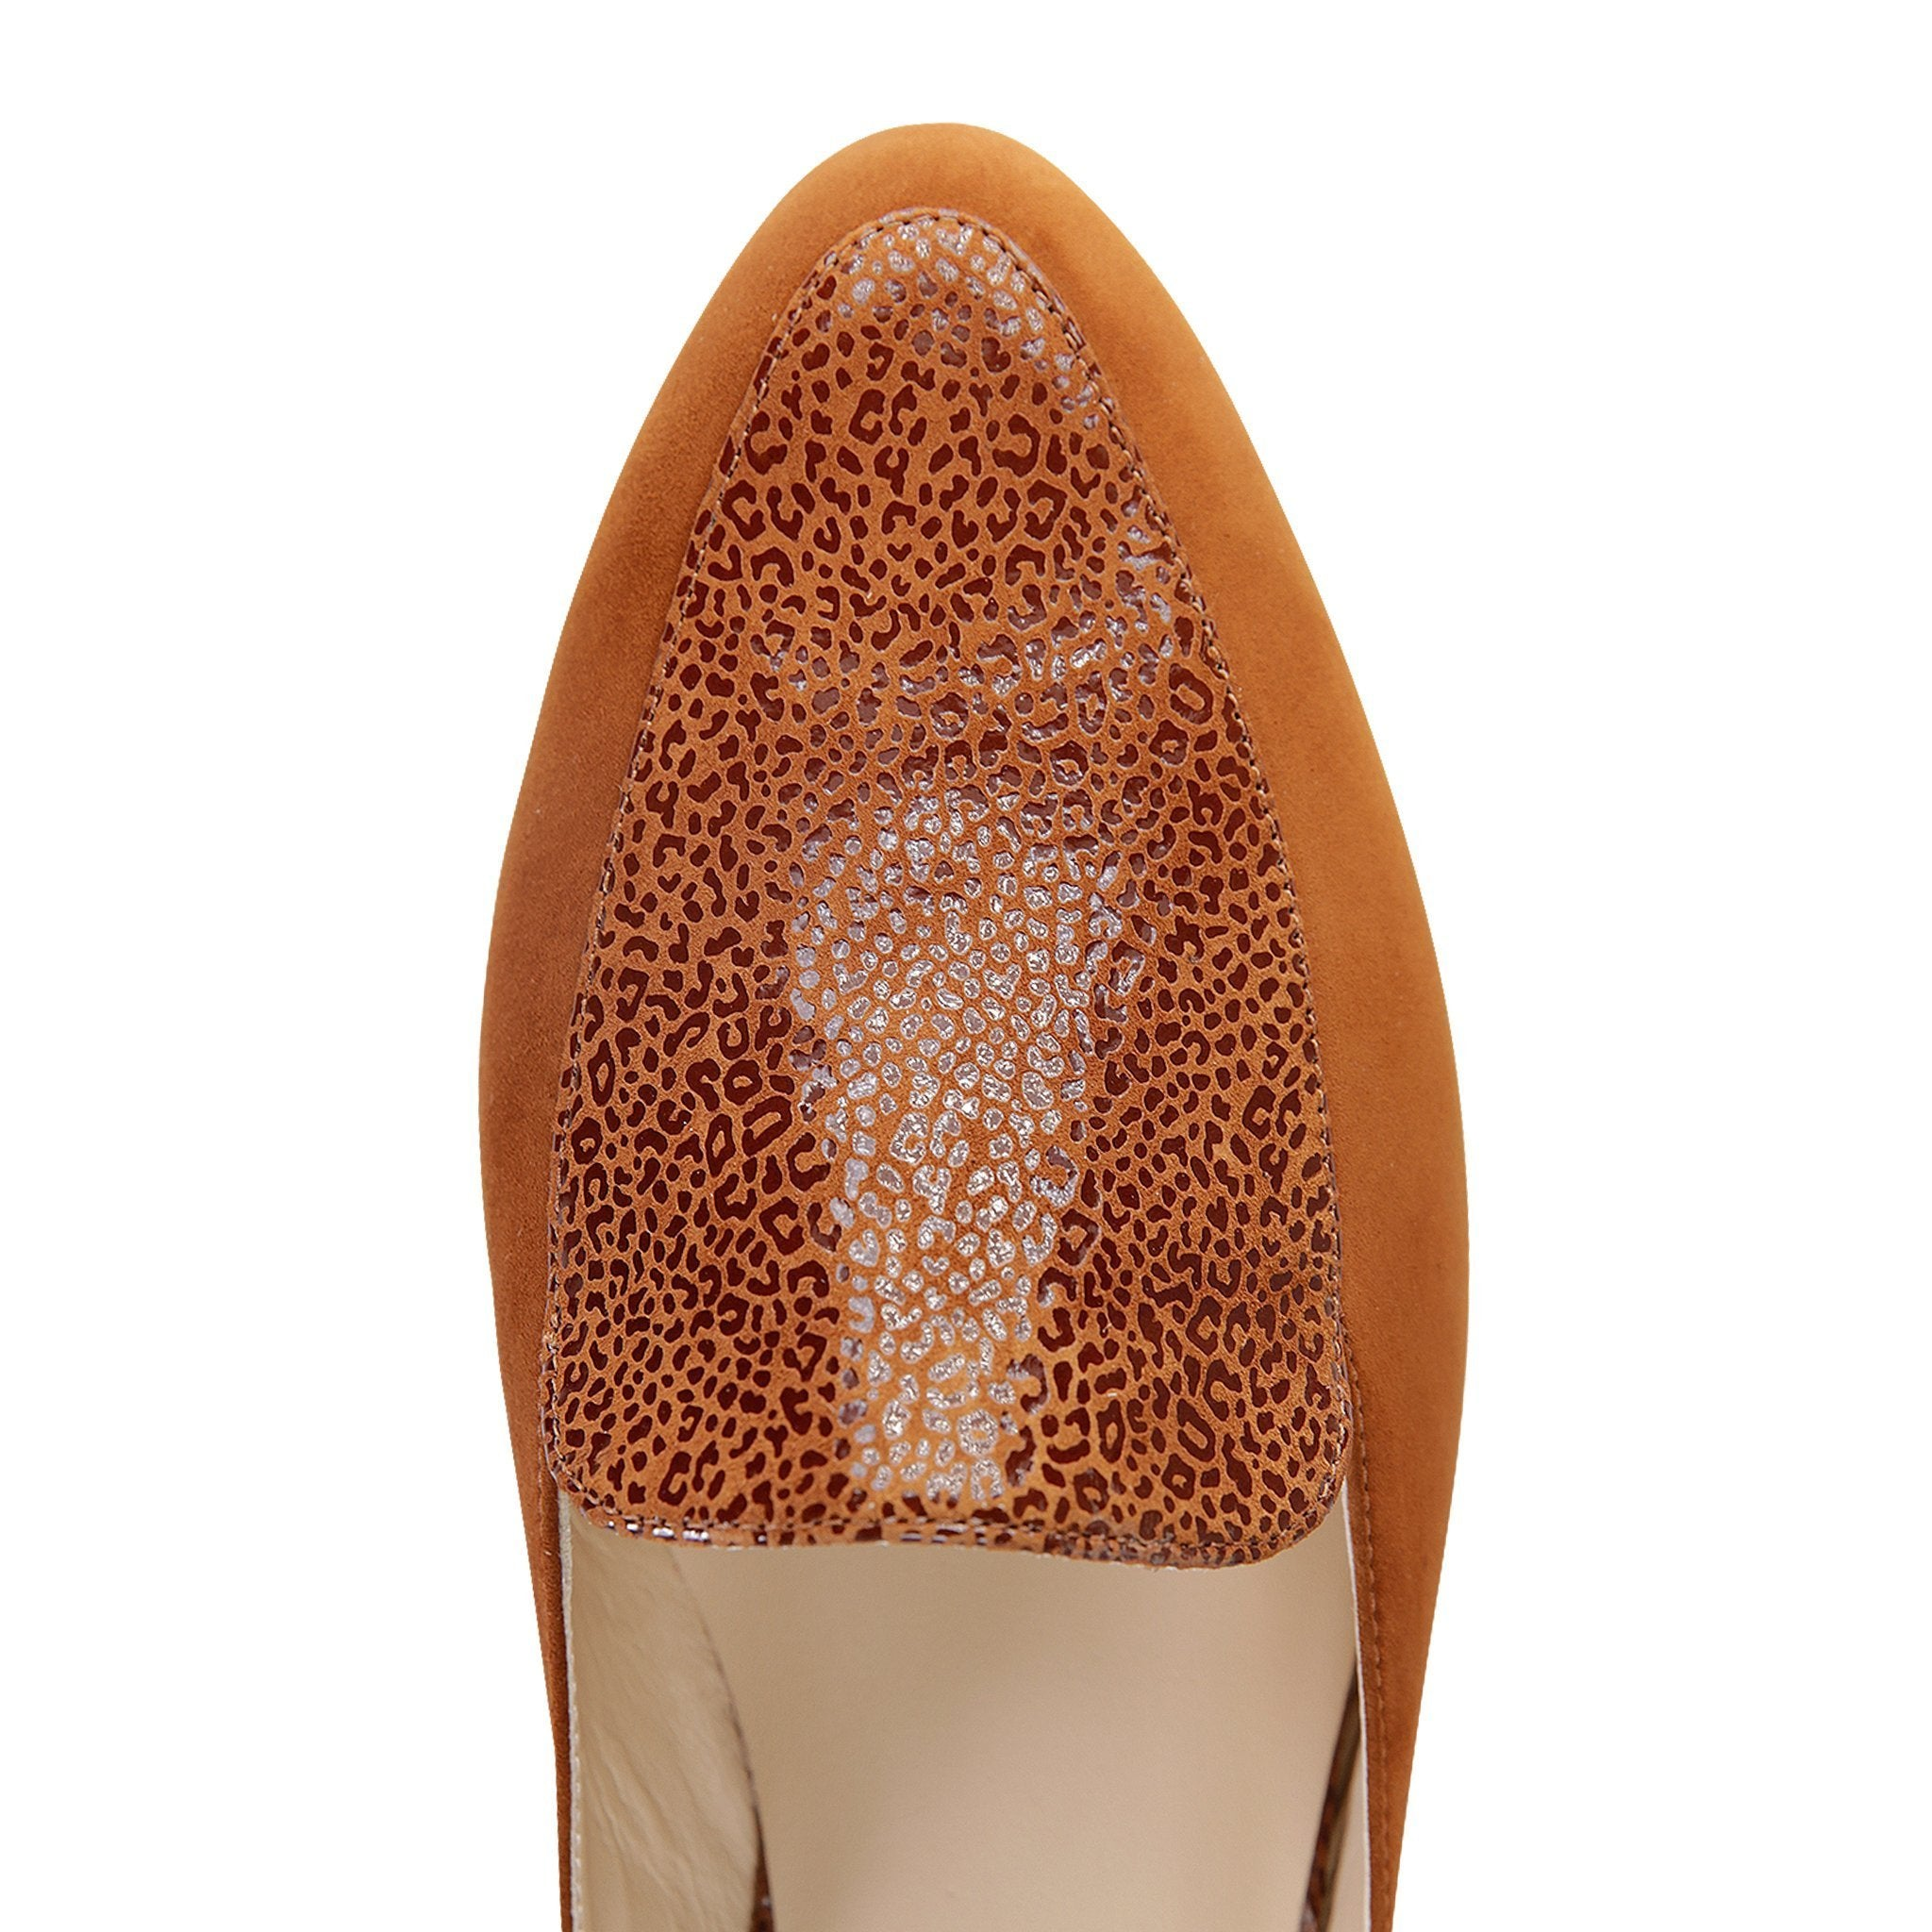 ISEO - Velukid + Savannah Dune, VIAJIYU - Women's Hand Made Sustainable Luxury Shoes. Made in Italy. Made to Order.